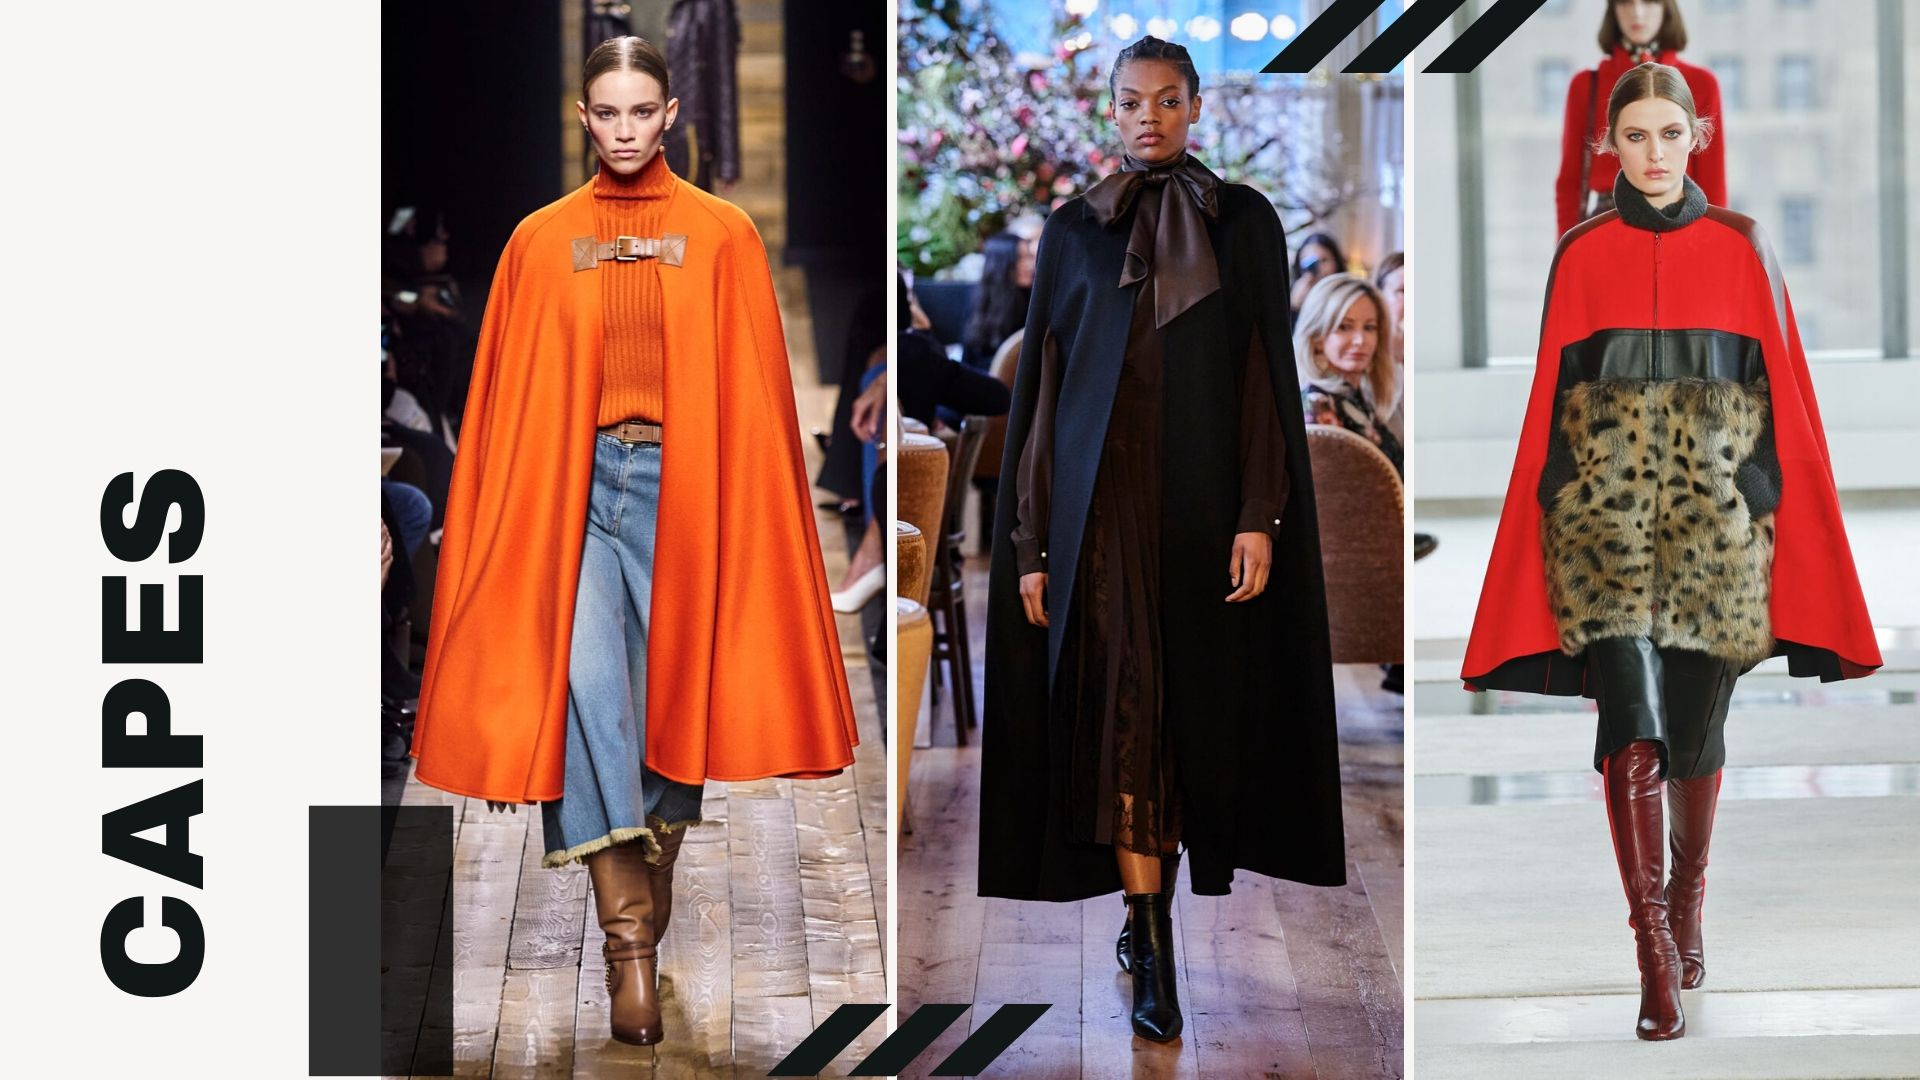 Top 5 trends from New York Fashion Week Fall/Winter 2020 - Capes